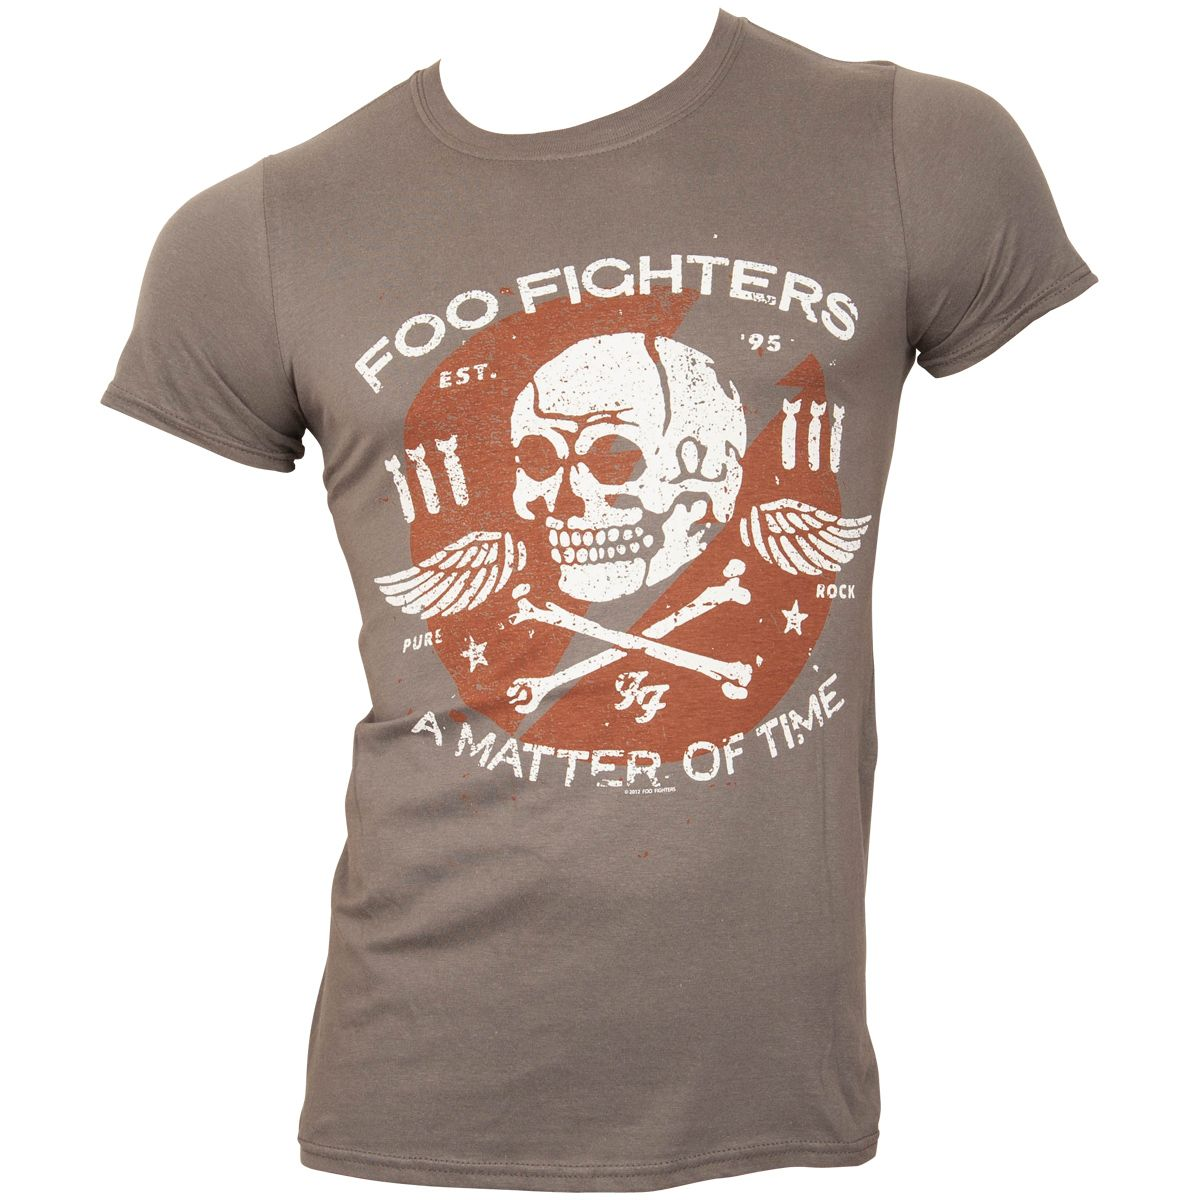 Foo Fighters - T-Shirt Matter Of Time - grau